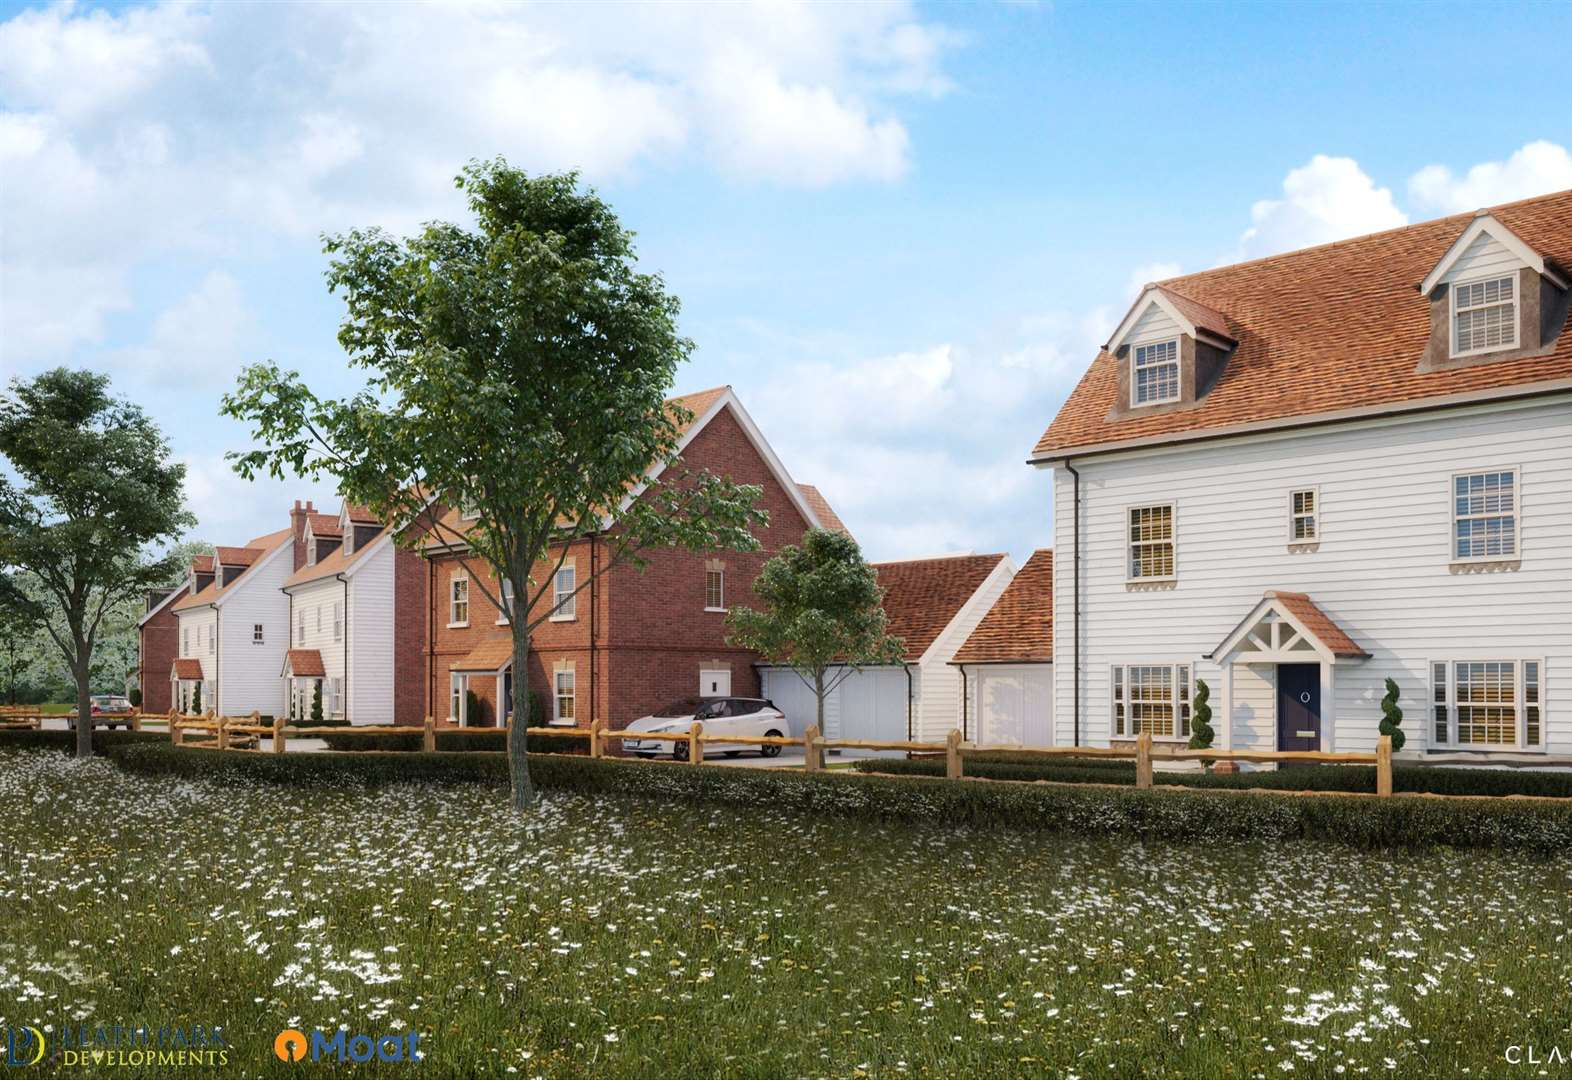 New images of village development unveiled